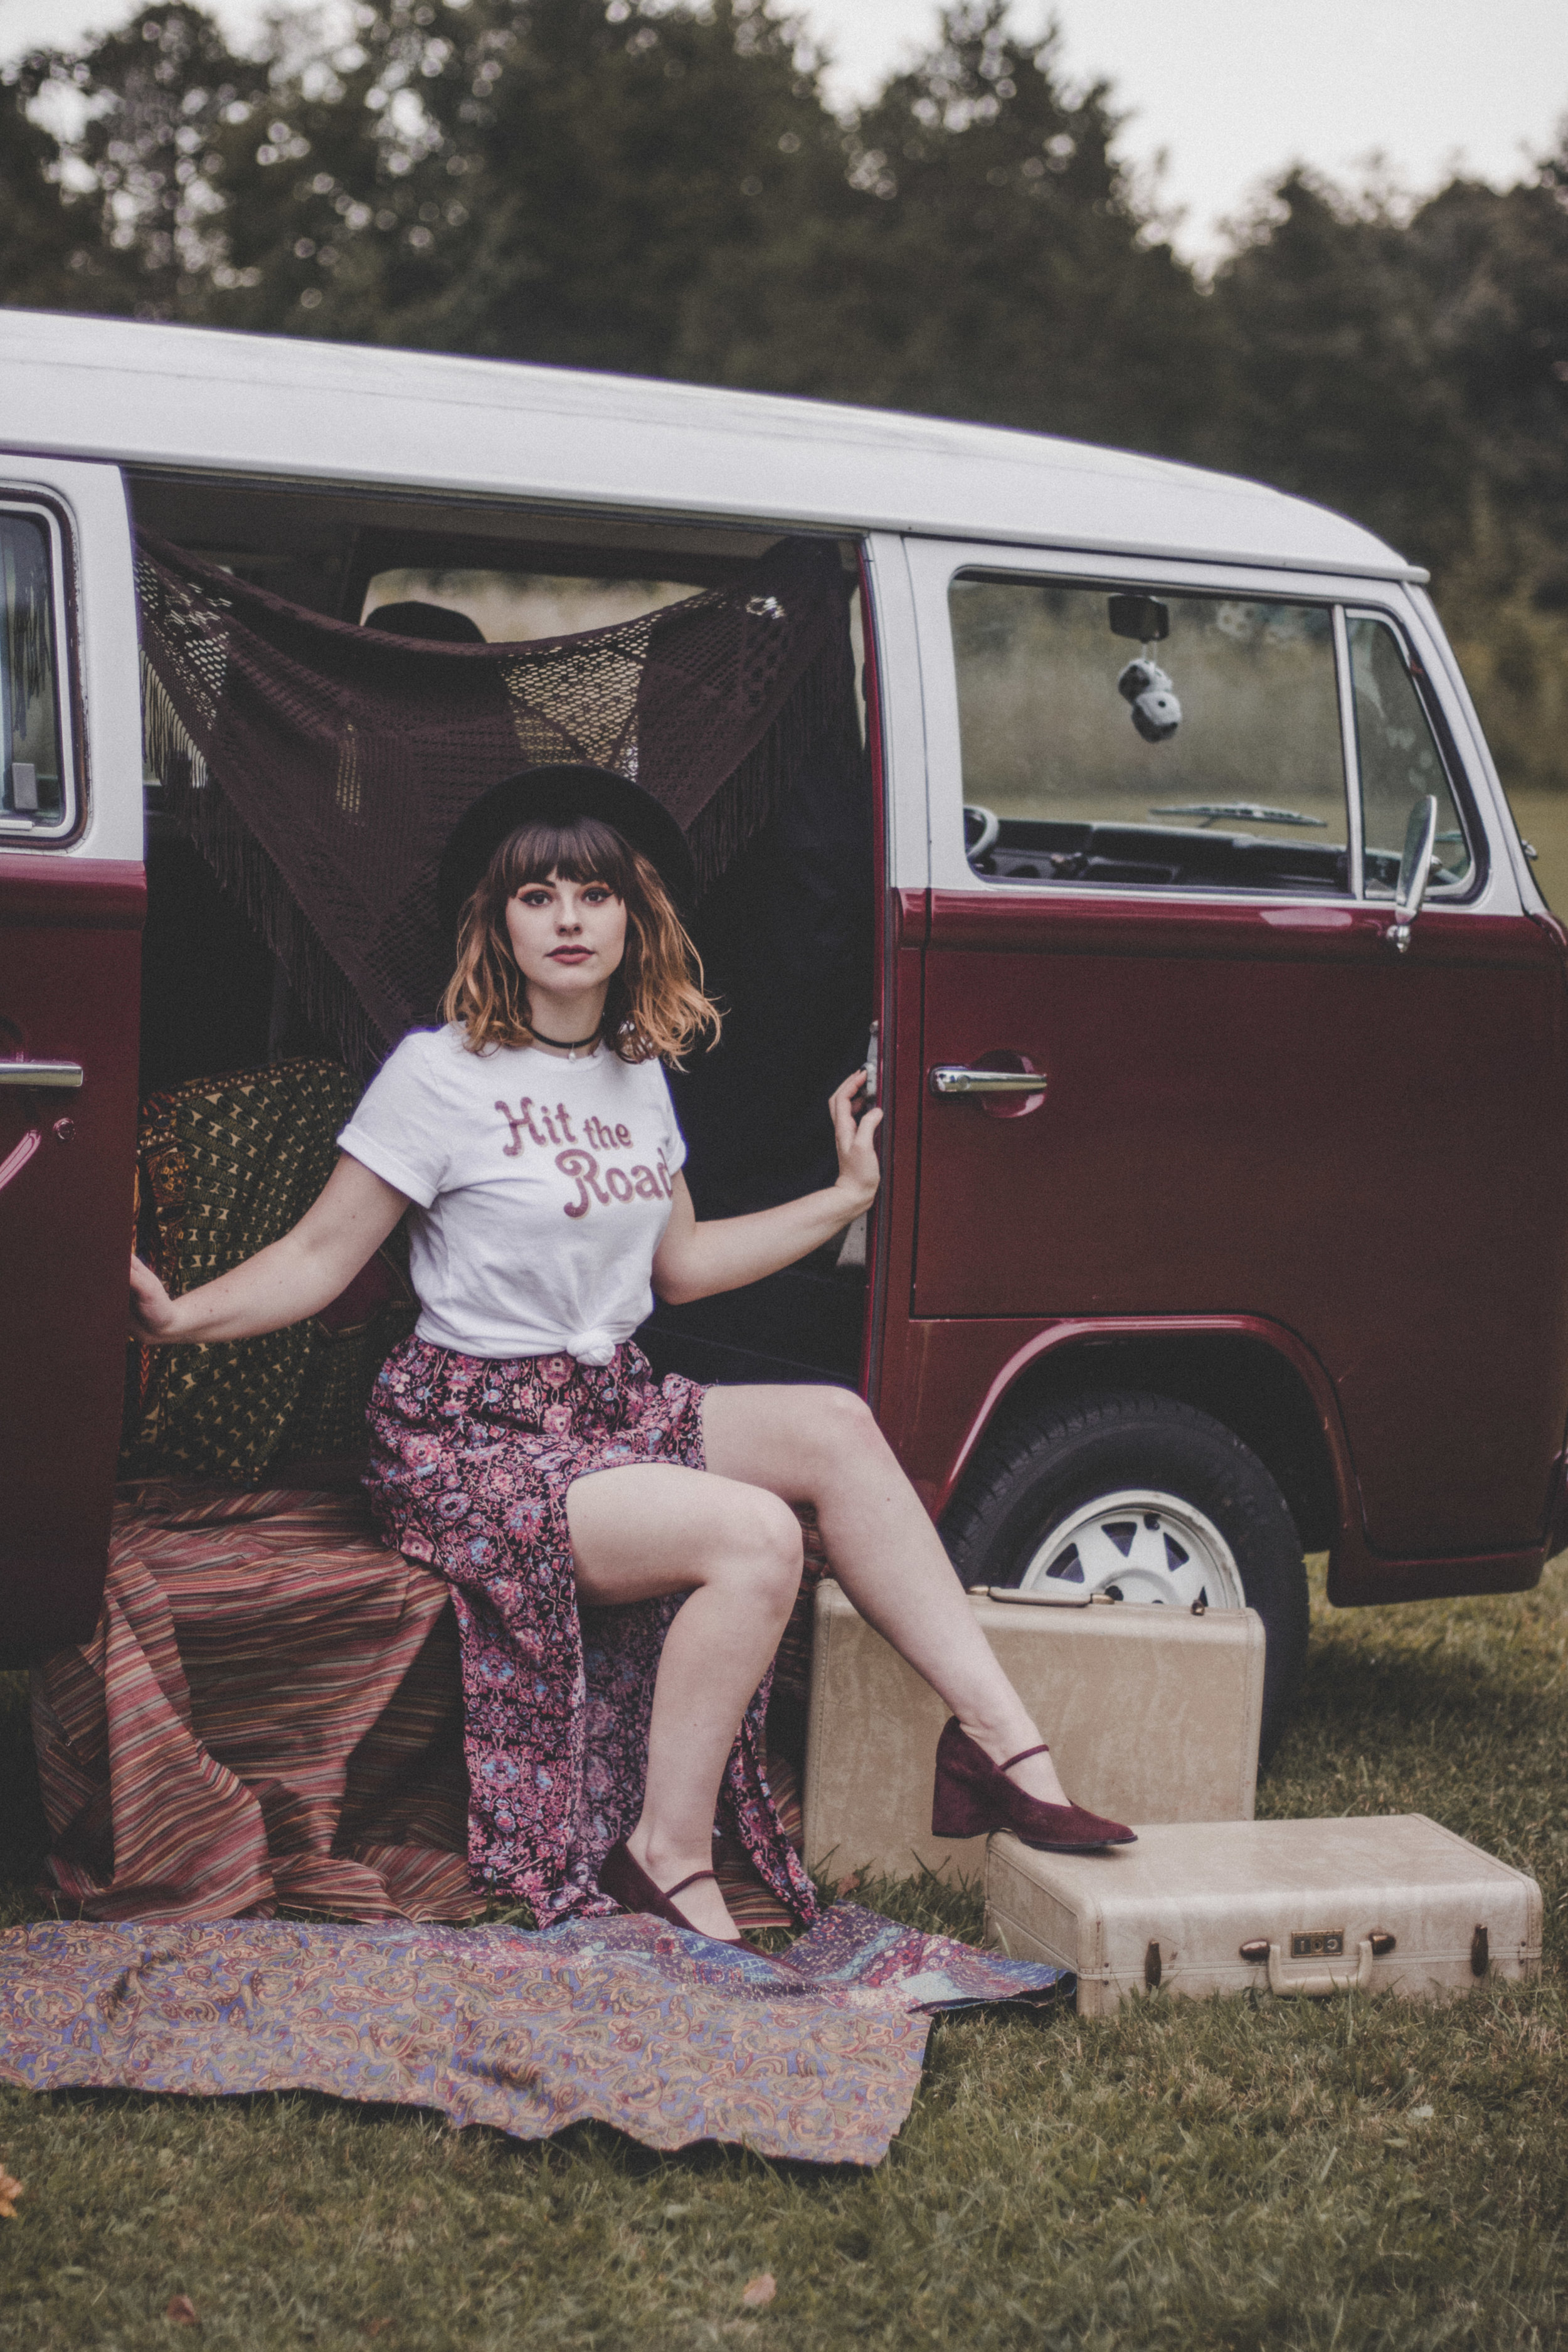 a girl and a bus. - We bought a bus. A '78 Volkswagen Transporter, to be exact. Vagabondary took a giant leap from online-only to a shop on wheels.